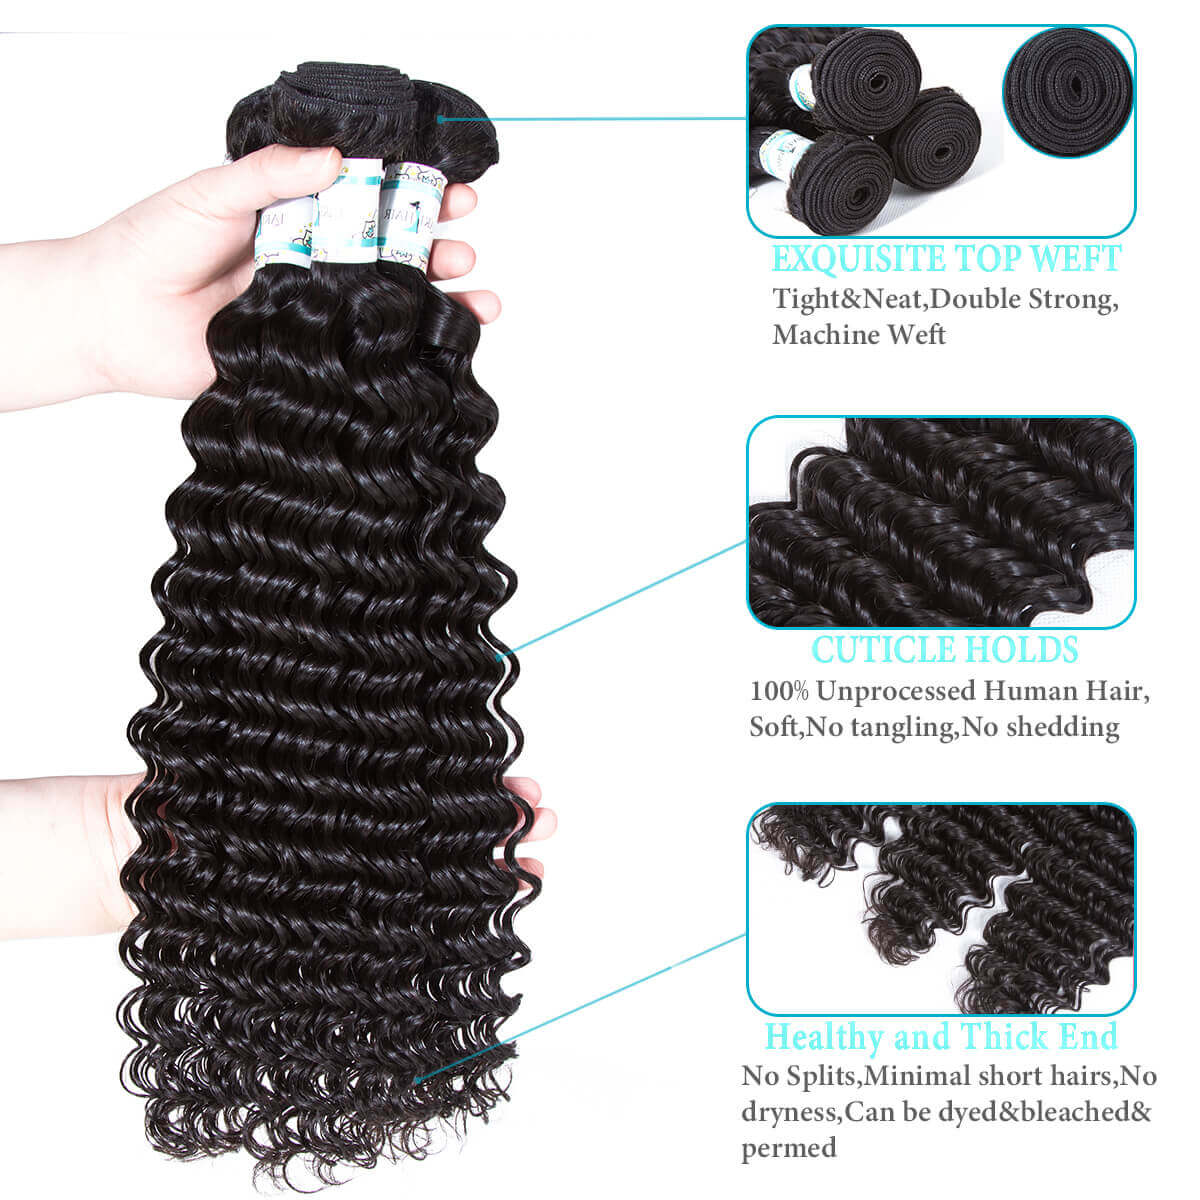 Lakihair 8A Brazilian Deep Wave Human Hair 3 Bundles With Lace Closure 4x4 Virgin Human Hair Weaves